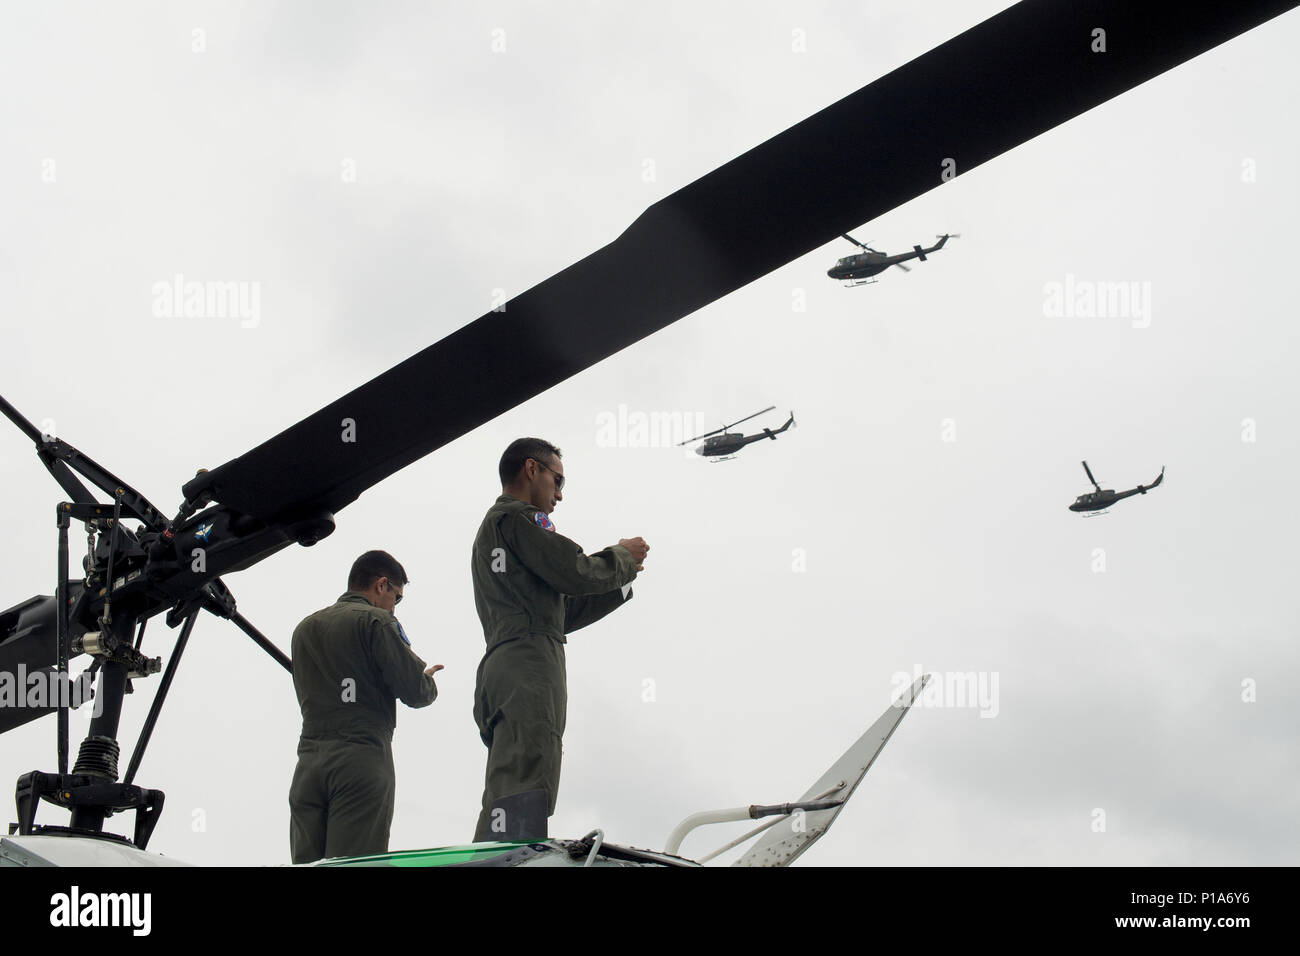 (Right to left) U.S. Air Force Capt. Jonathan Bonilla and Capt. Vicente Vasquez, 459th Airlift Squadron UH-1N Iroquois pilots, take photos of a Japan Ground Self-Defense Force UH-1J Huey formation flight display during the 43rd Anniversary Event of Japan Ground Self-Defense Force Camp Tachikawa at JGSDF Camp Tachikawa, Japan, Oct. 1, 2016.  JGSDF UH-1Js assigned to Eastern Army Helicopter demonstrated flight formations, hoist techniques and disaster relief procedures with first responders. Service members with the 459th Airlift Squadron from Yokota Air Base and Army Aviation Battalion from Cam Stock Photo